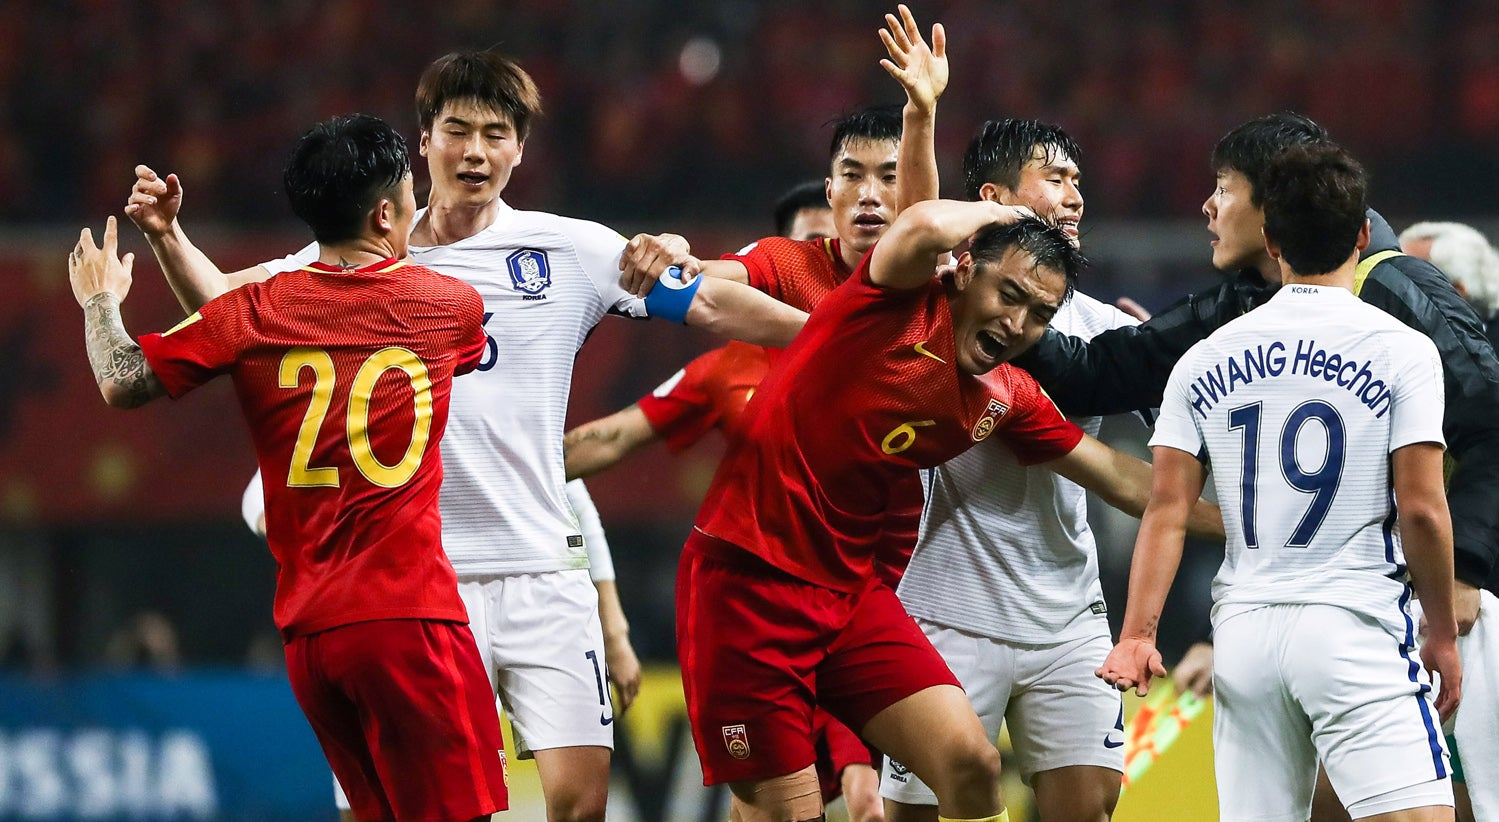 Mundial2018: China vence Coreia do Sul com golo do ex-benfiquista Yu Dabao